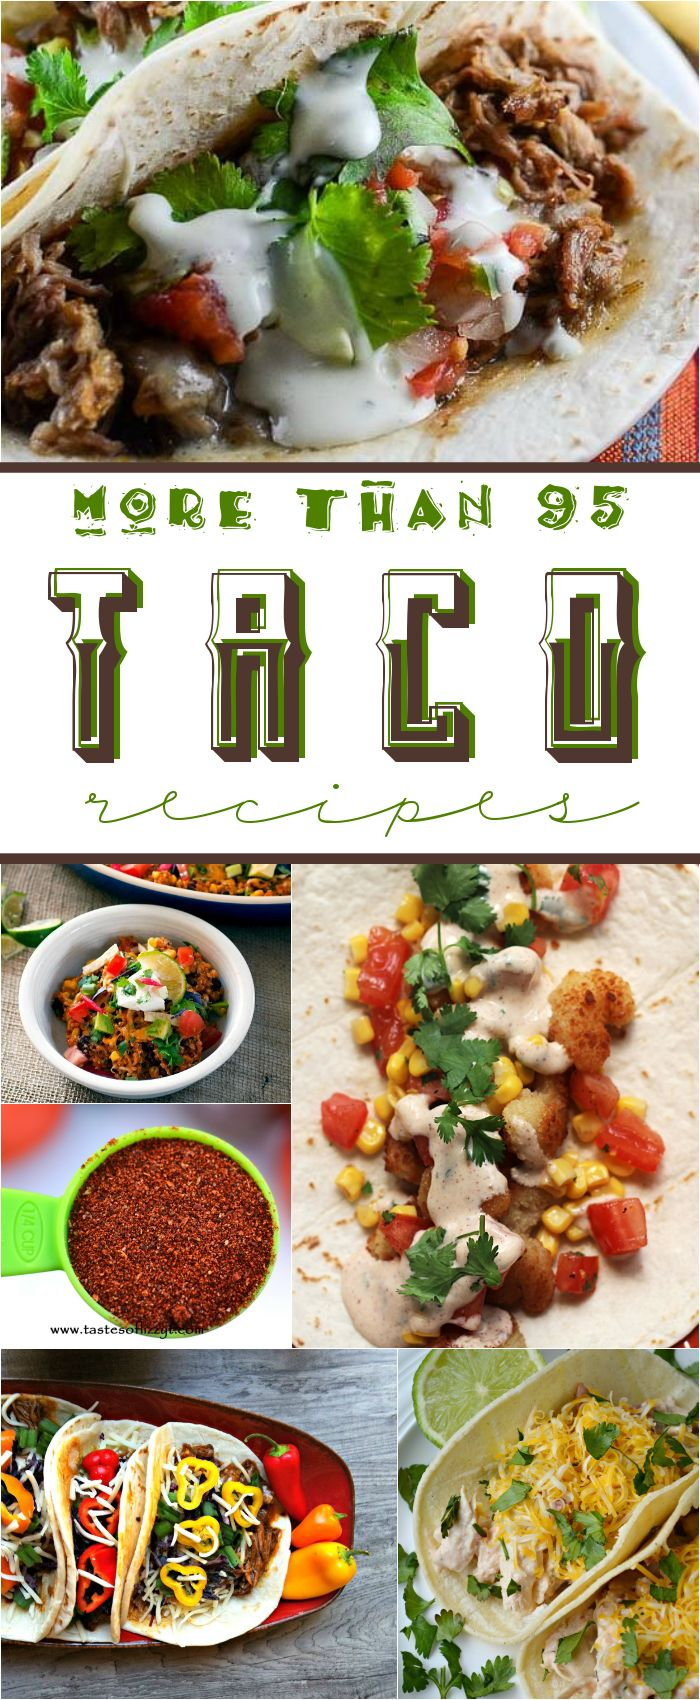 More than 95 TACO recipes! There's something for everyone!